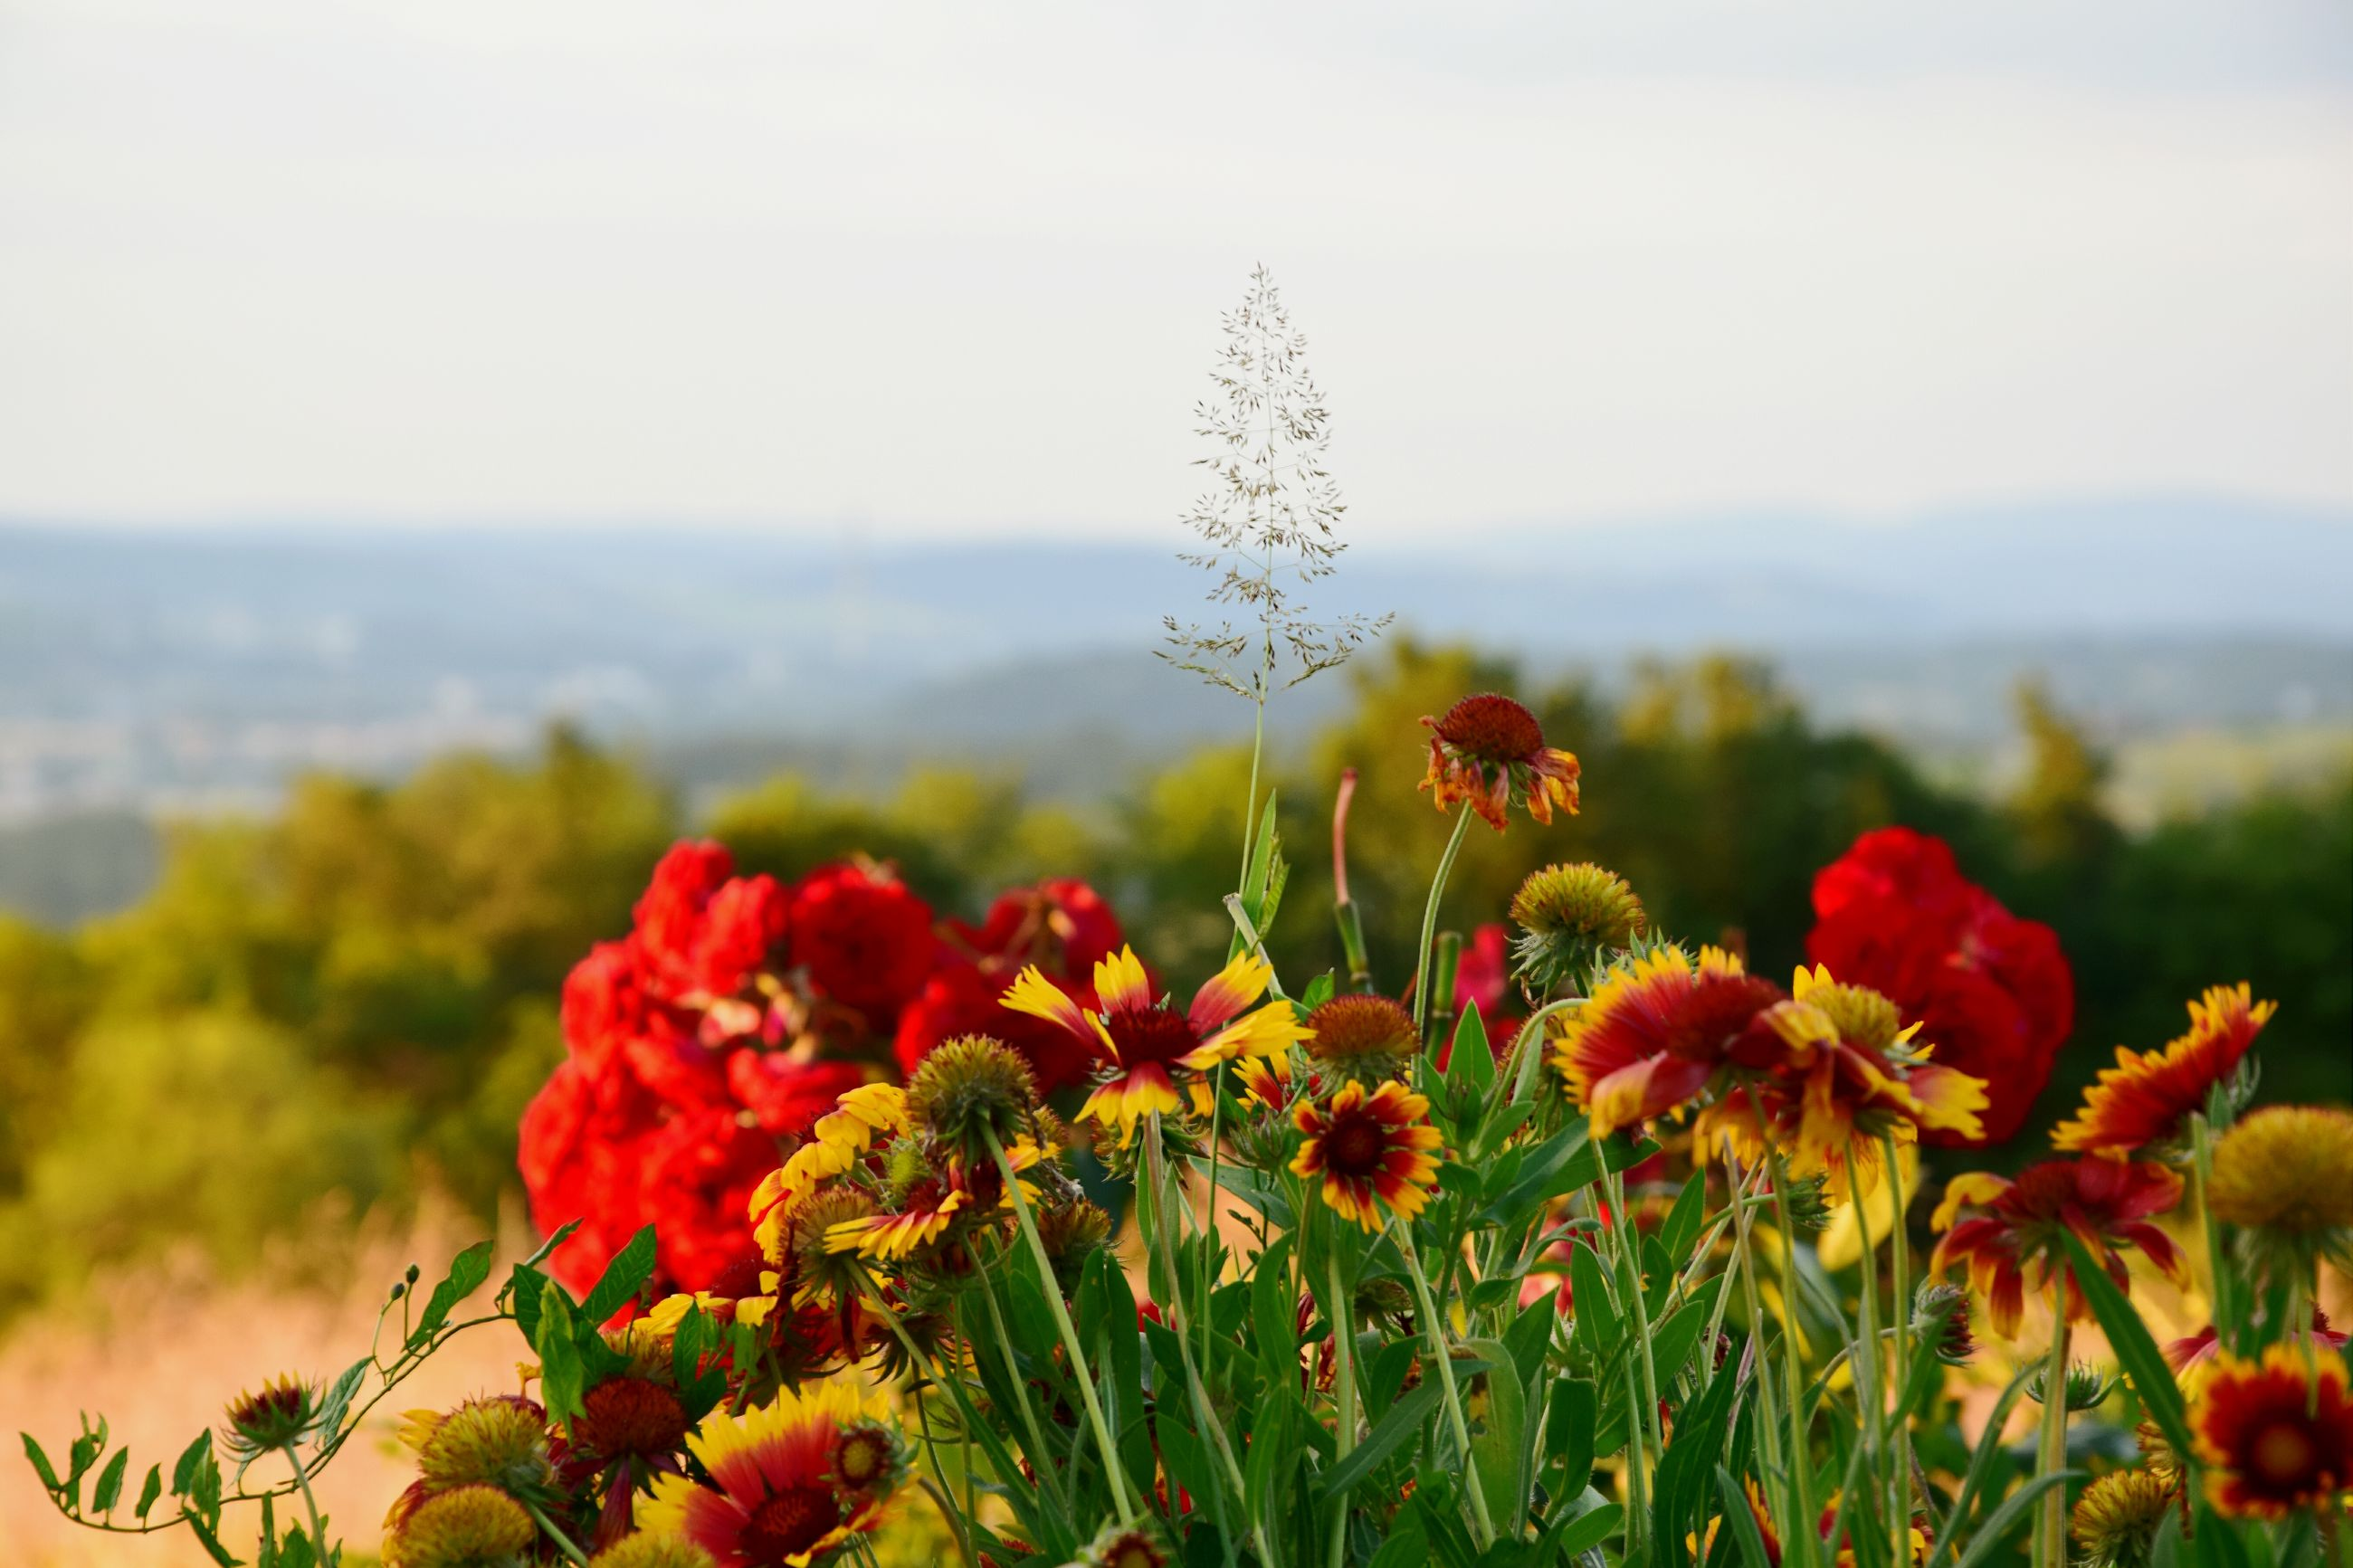 flower, freshness, fragility, growth, beauty in nature, plant, focus on foreground, nature, petal, red, blooming, flower head, clear sky, close-up, field, stem, in bloom, sky, outdoors, botany